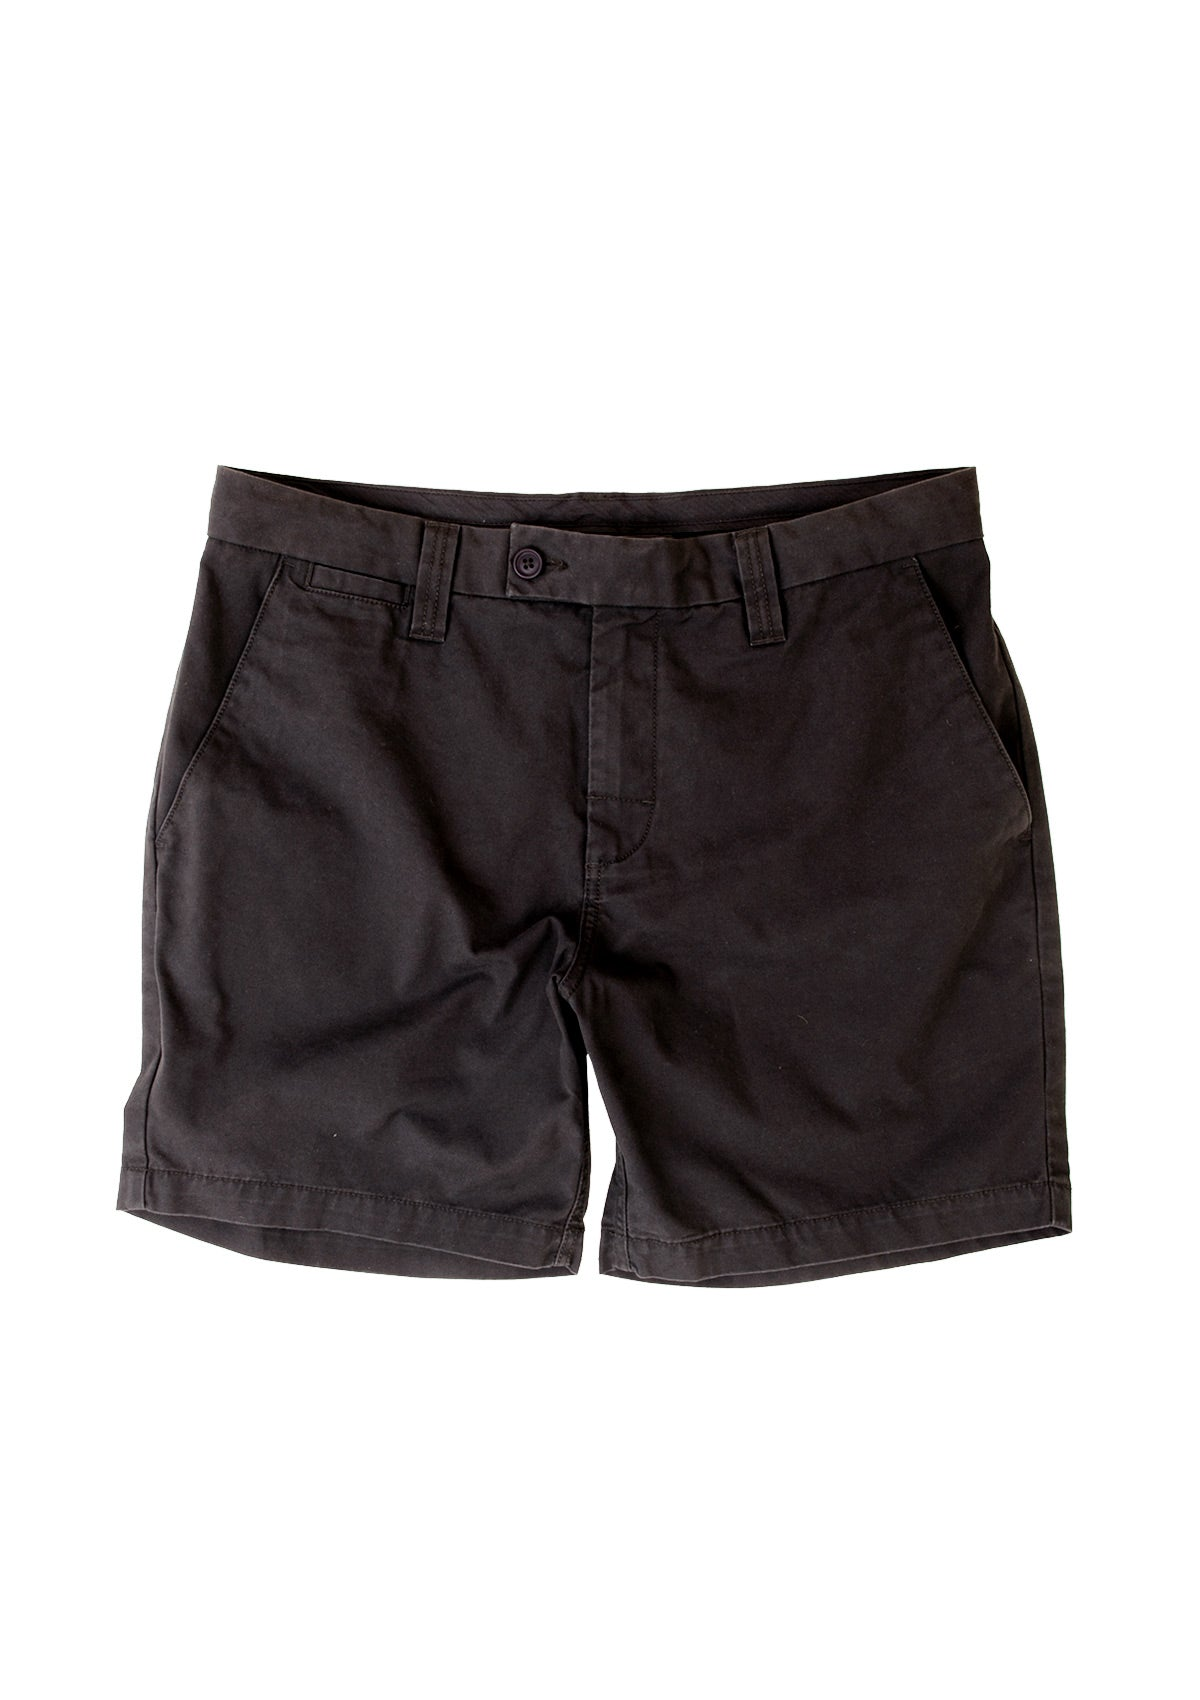 needessentials organic cotton walkshort black